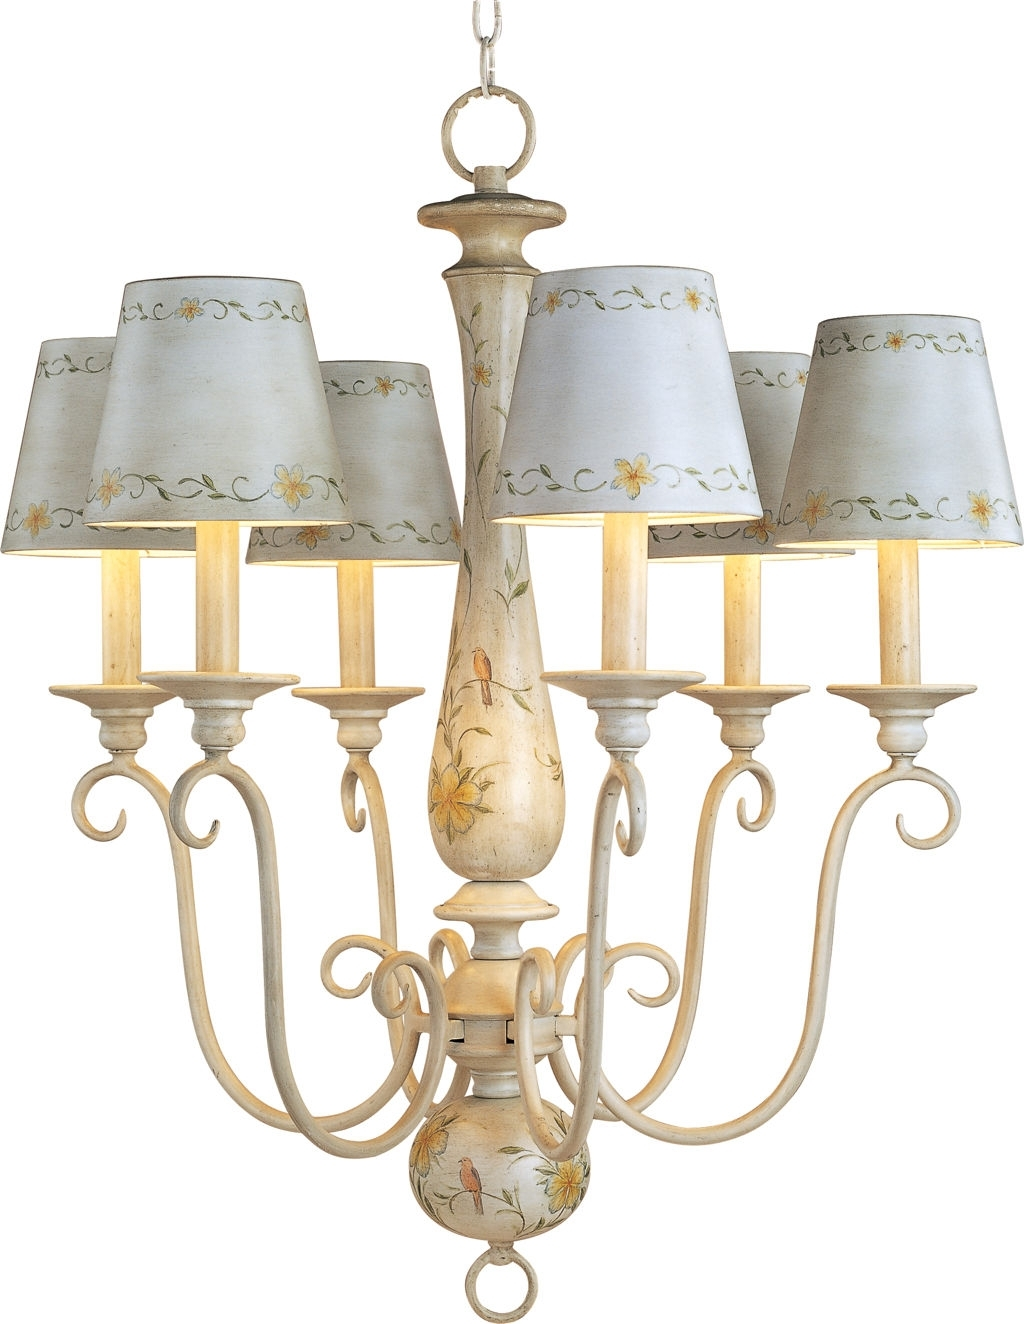 Lampshade Chandeliers Throughout Most Recently Released Antique French Country Mini Chandelier With Ceramic Lamp Shades And (View 10 of 20)